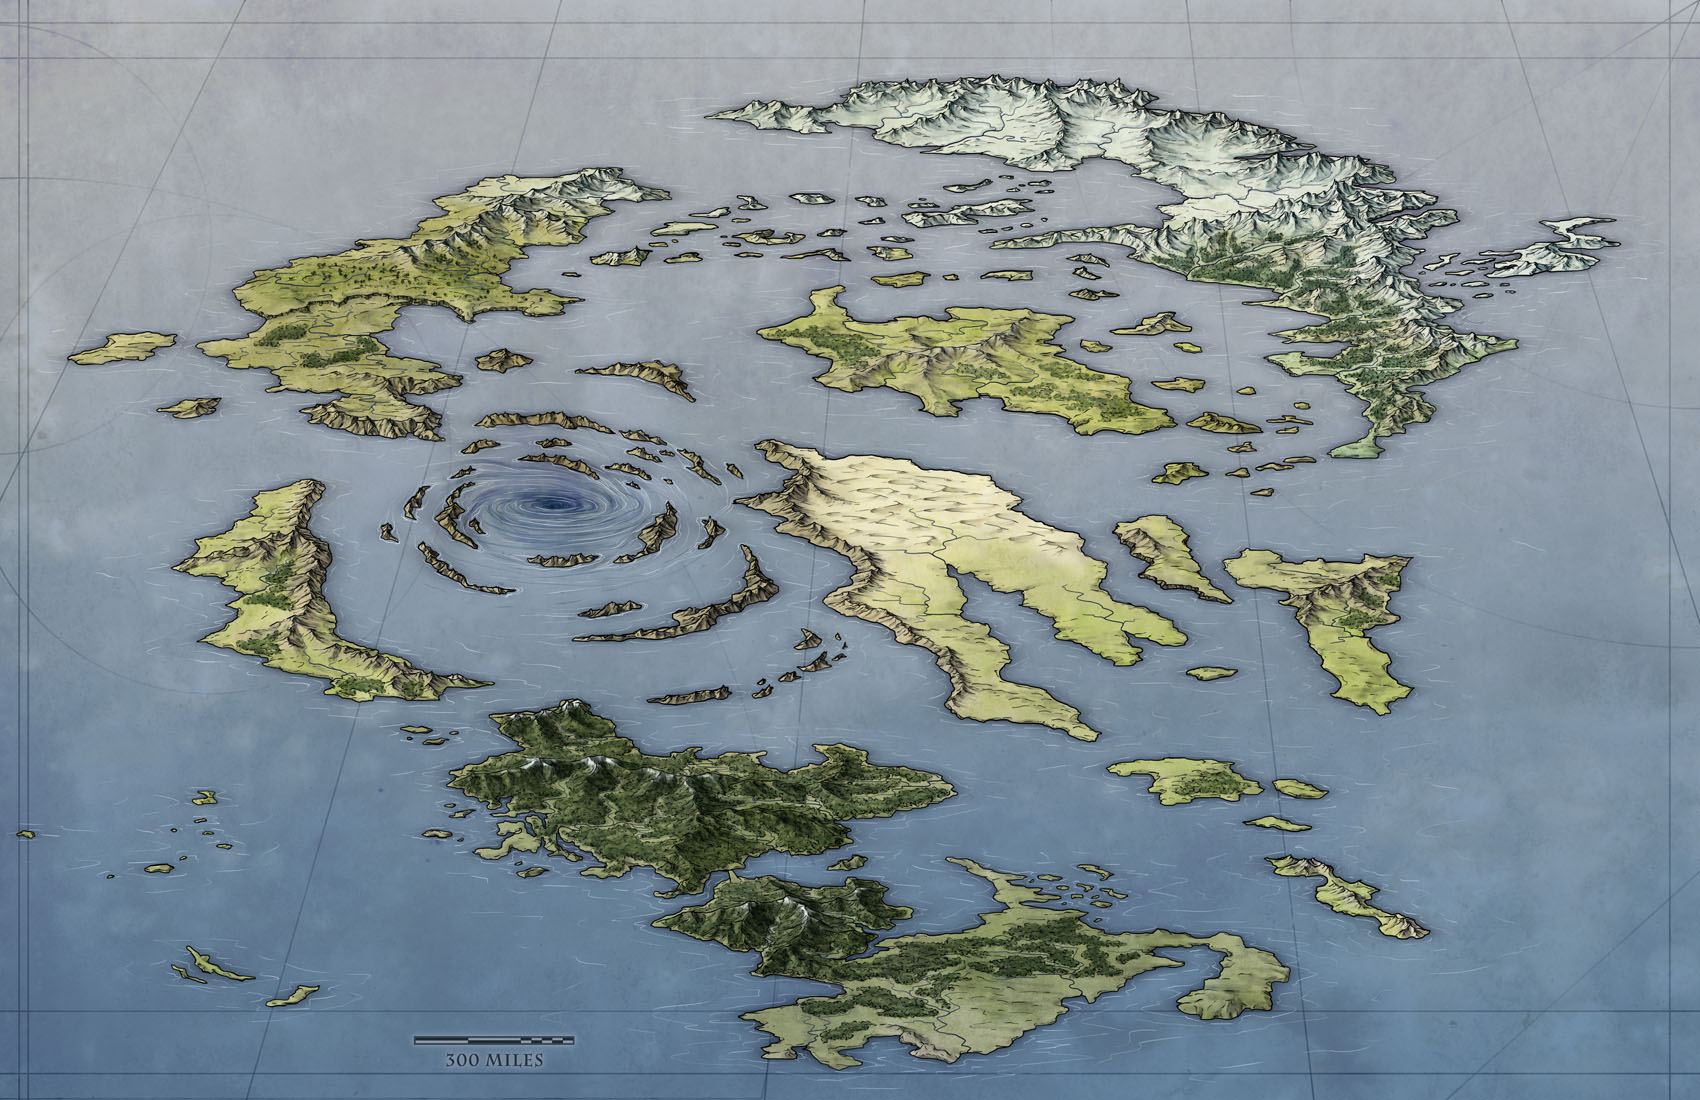 get the full sized map here